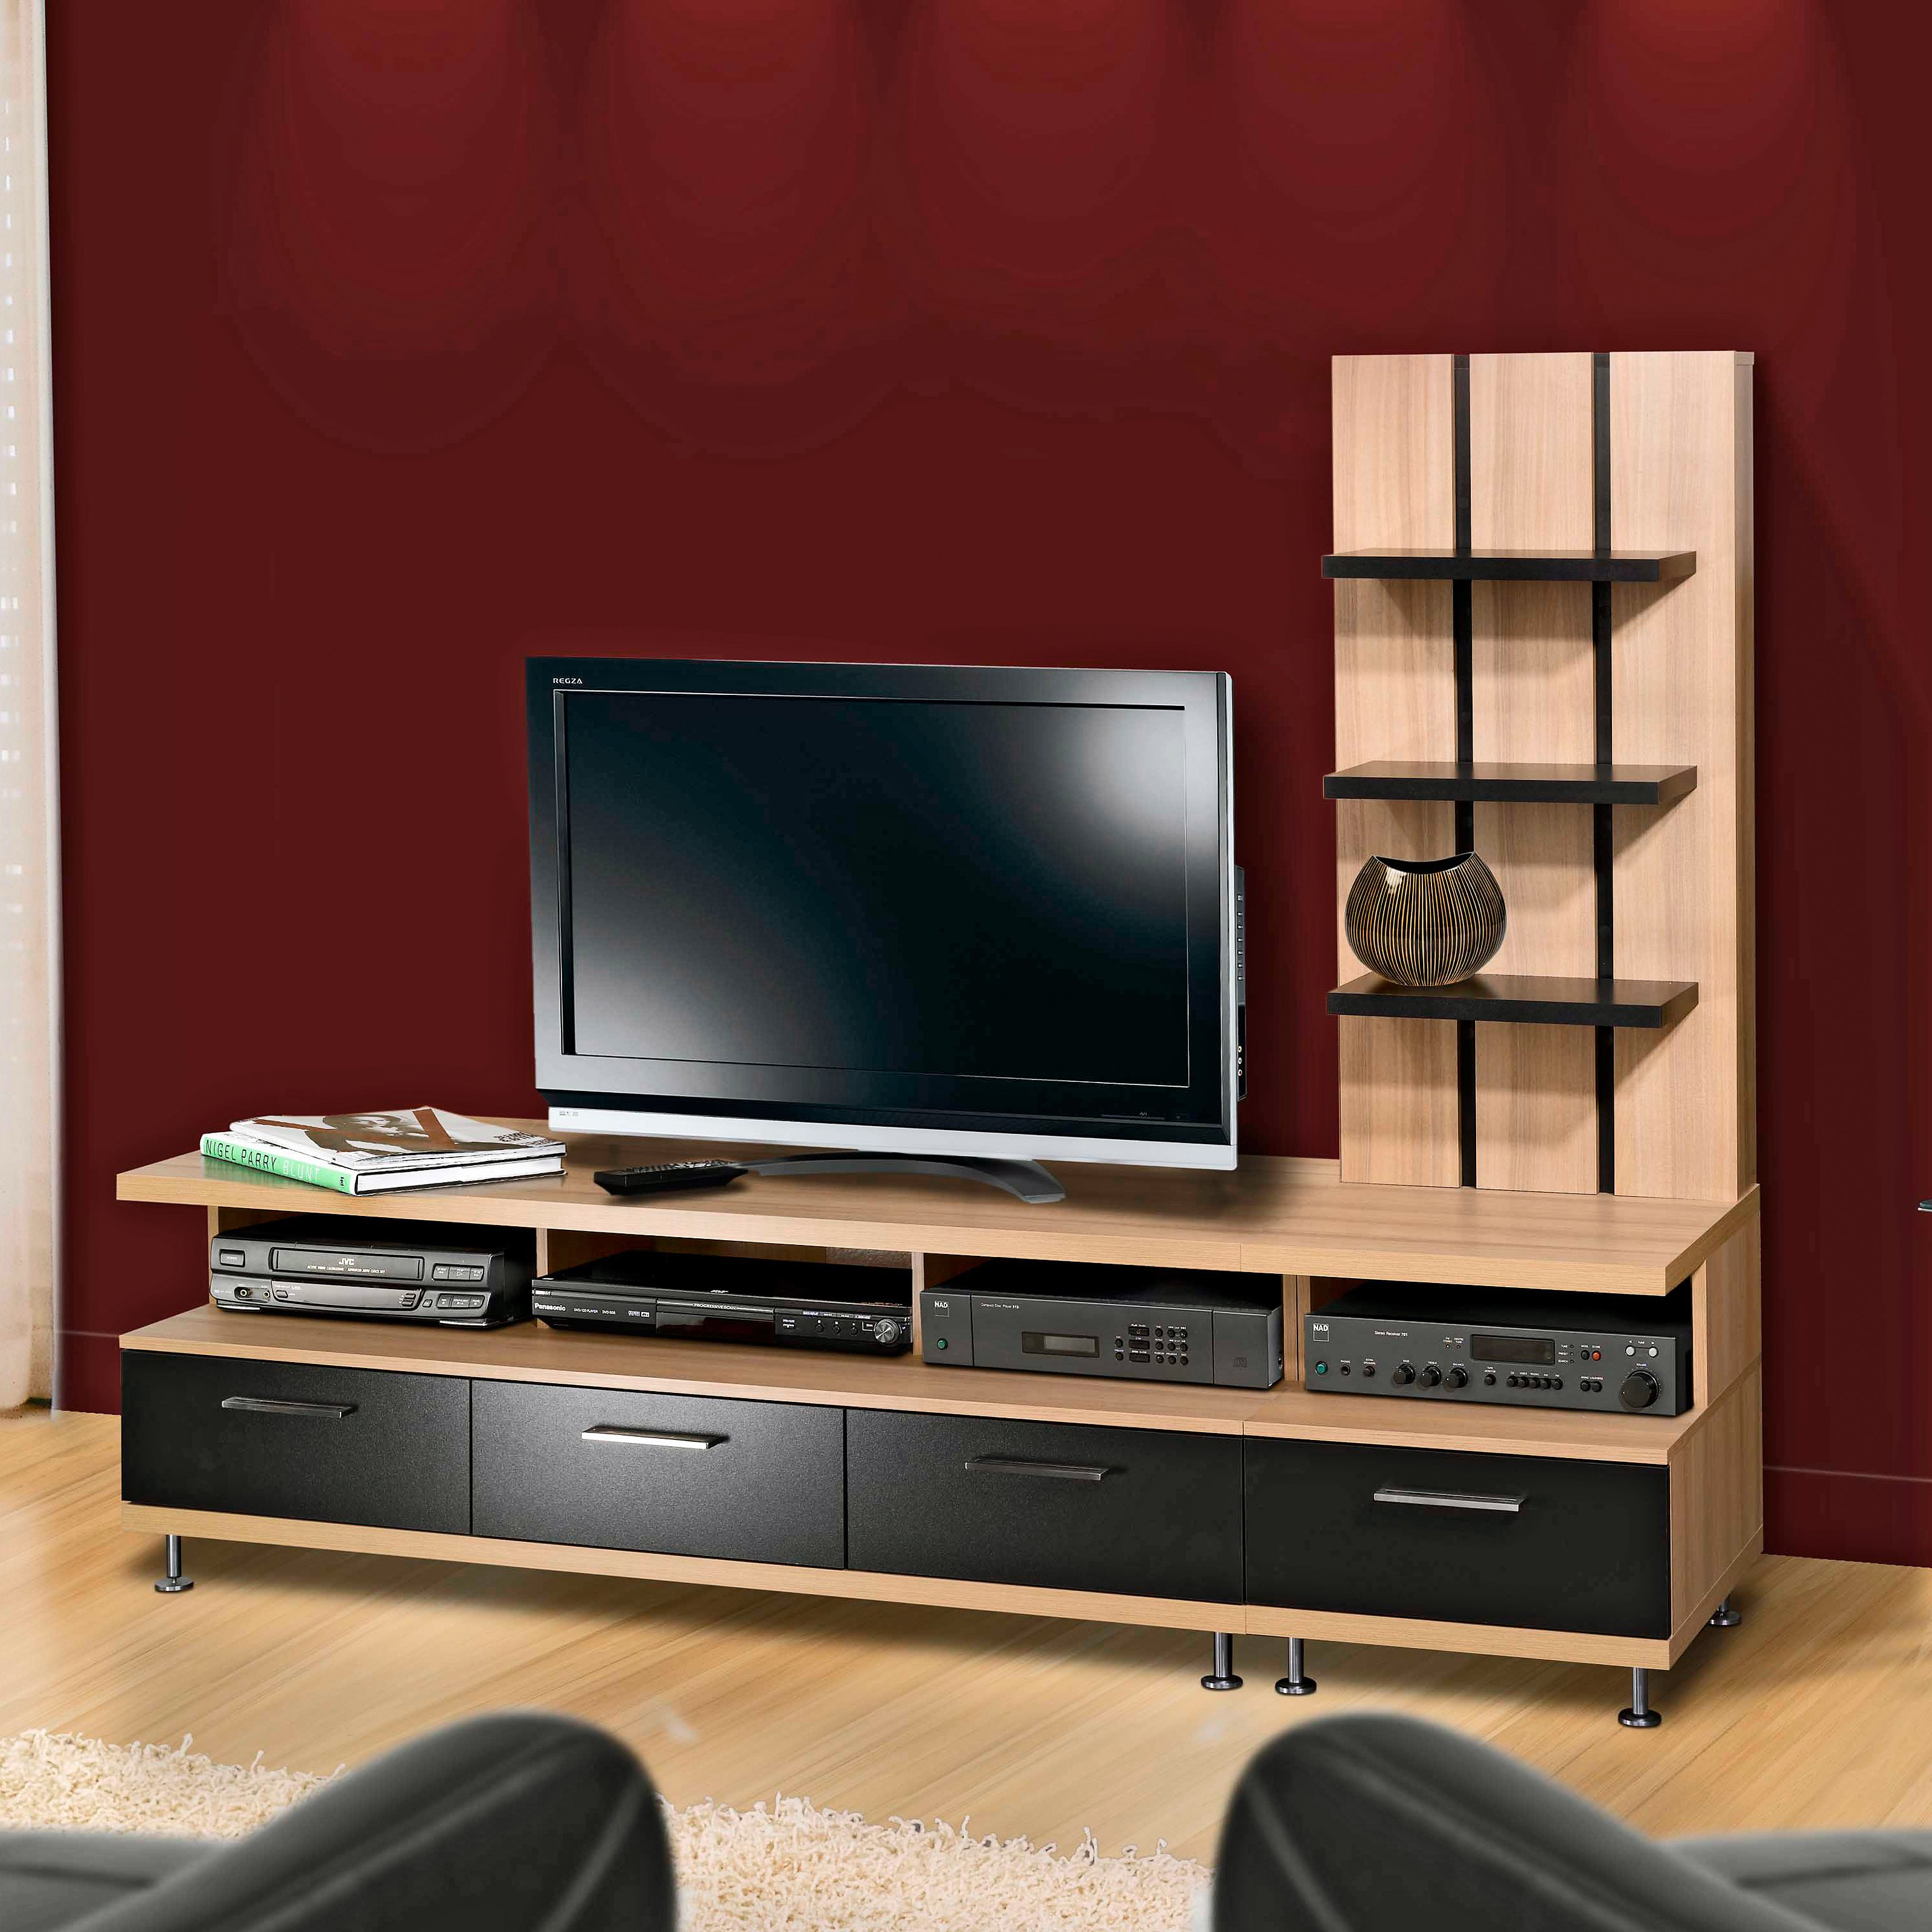 Fashionable Contemporary Tv Stands For Flat Screens With Regard To Ikea Tv Stand Hemnes Design Ideas Lack Modern Corner Wood (View 12 of 20)